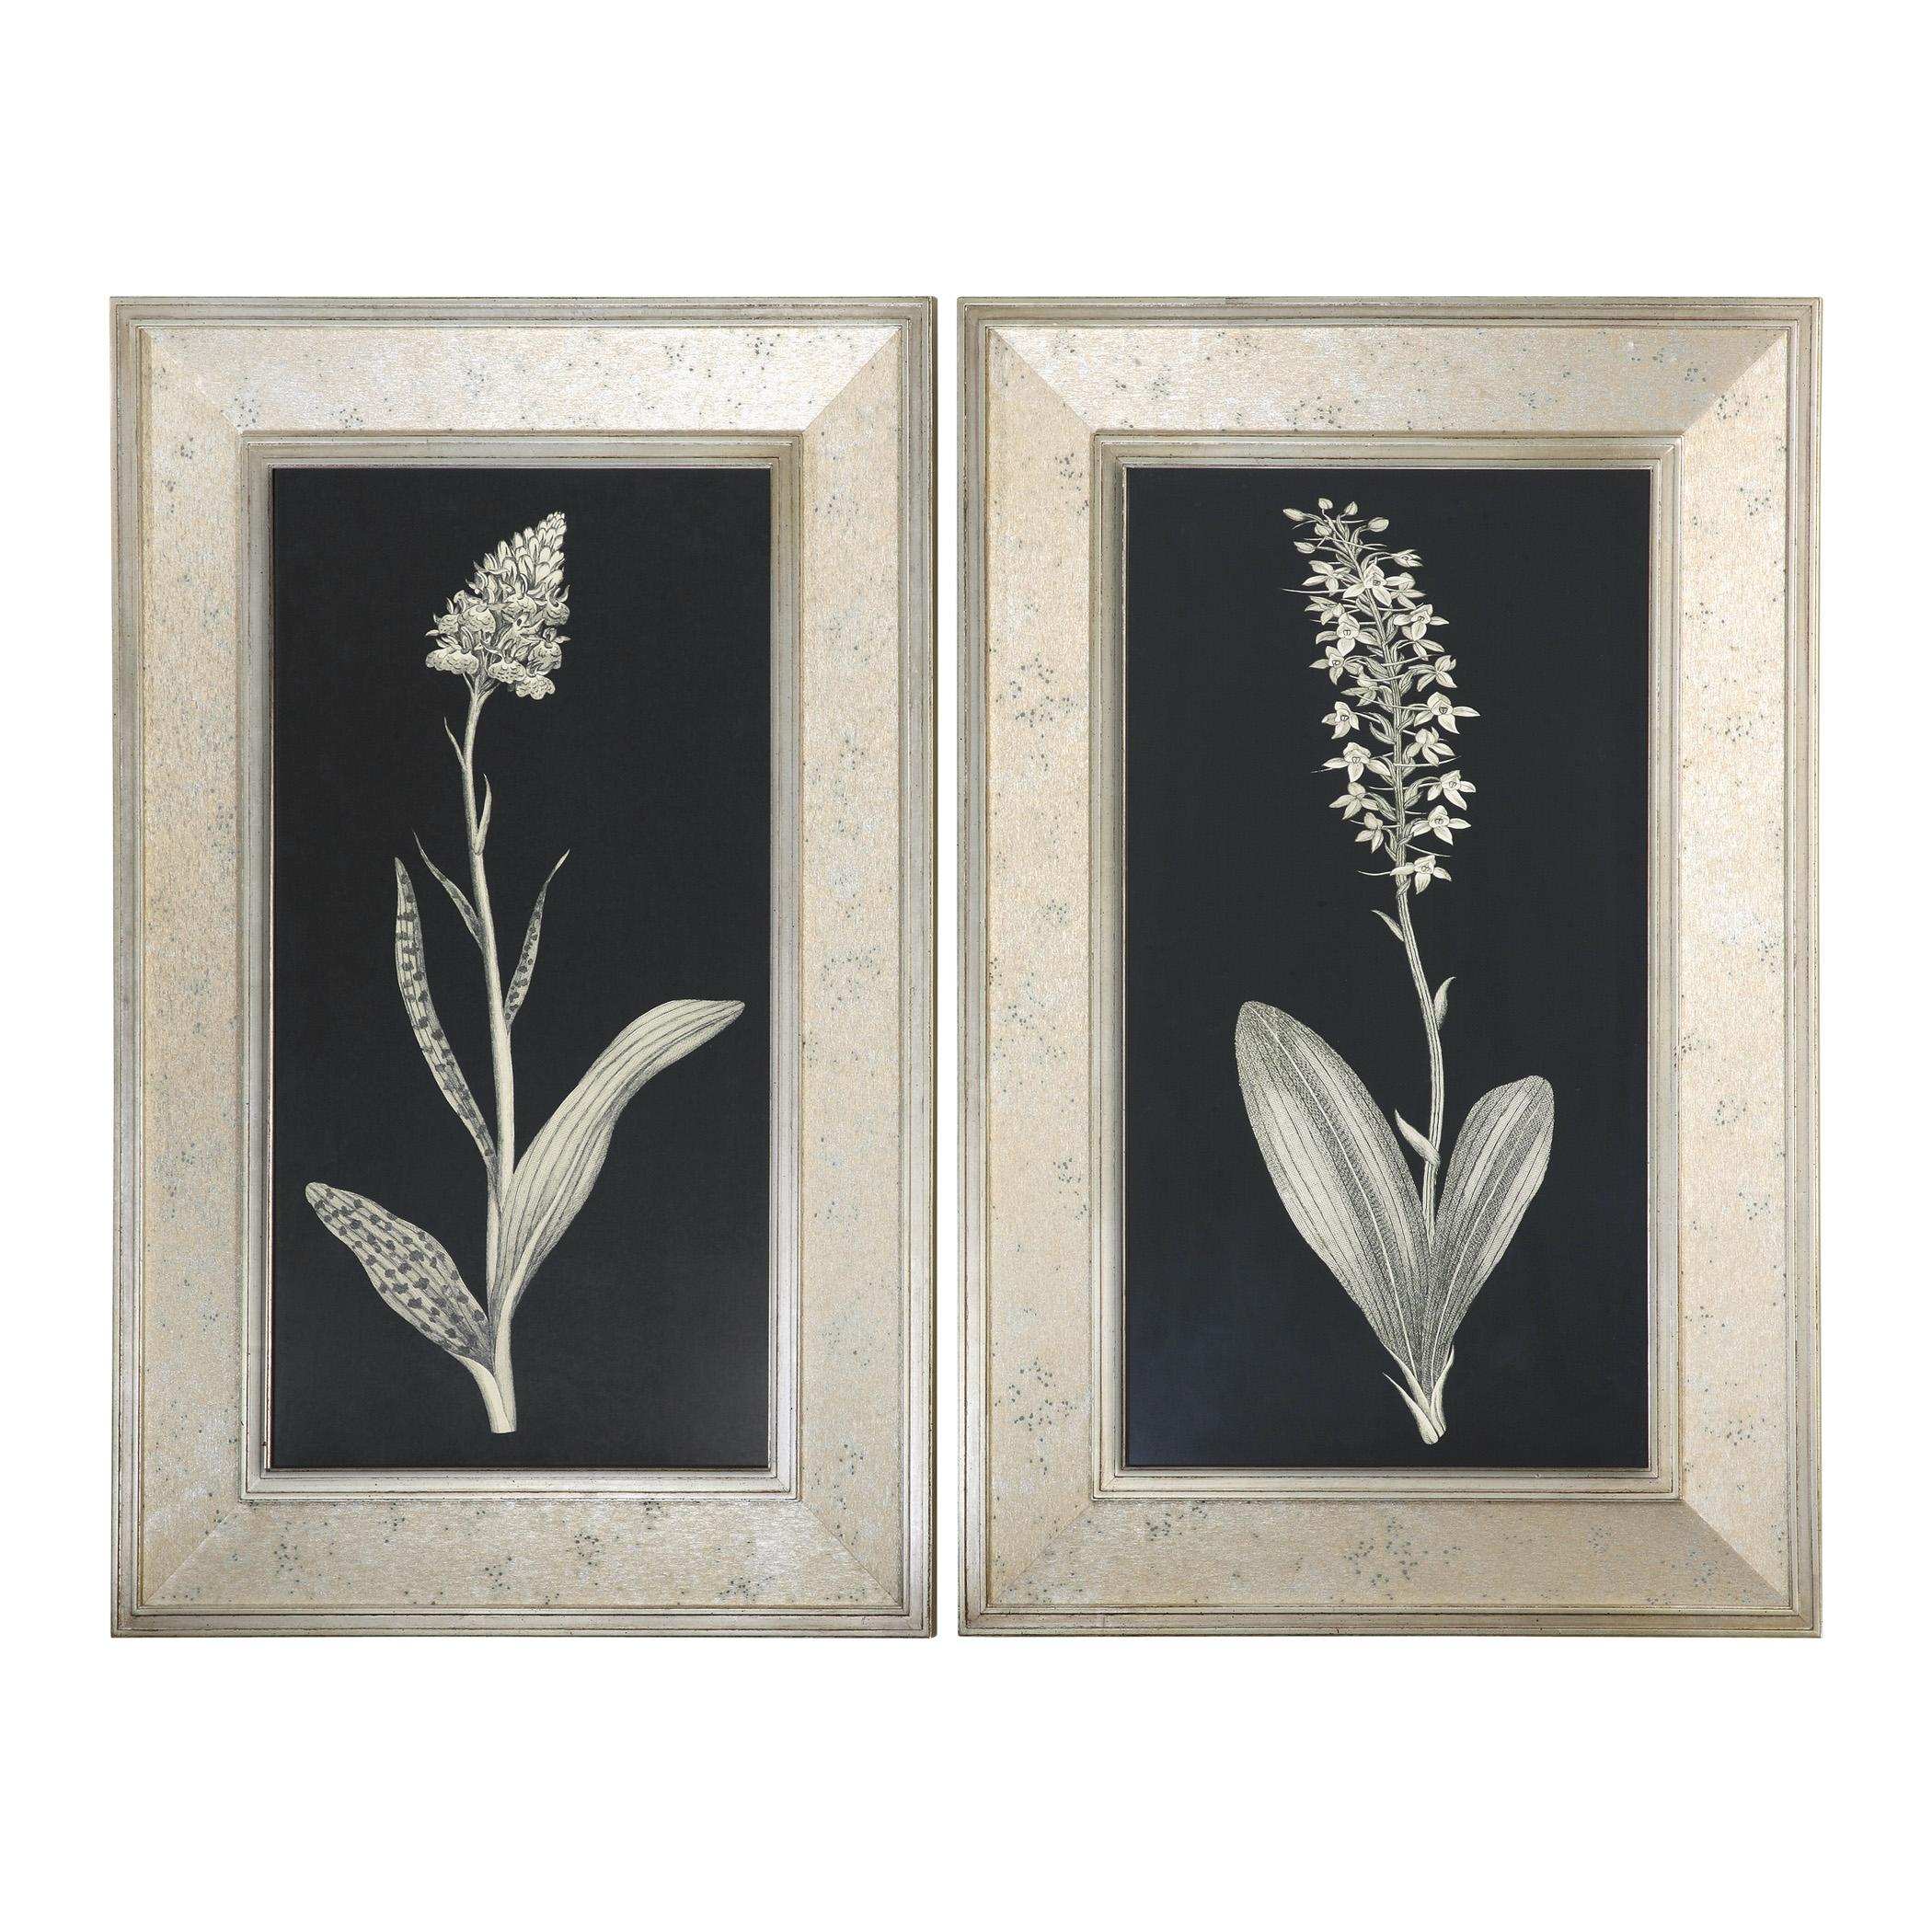 Uttermost Art Antique Floral Study Framed Art, Set of 2 - Item Number: 41529